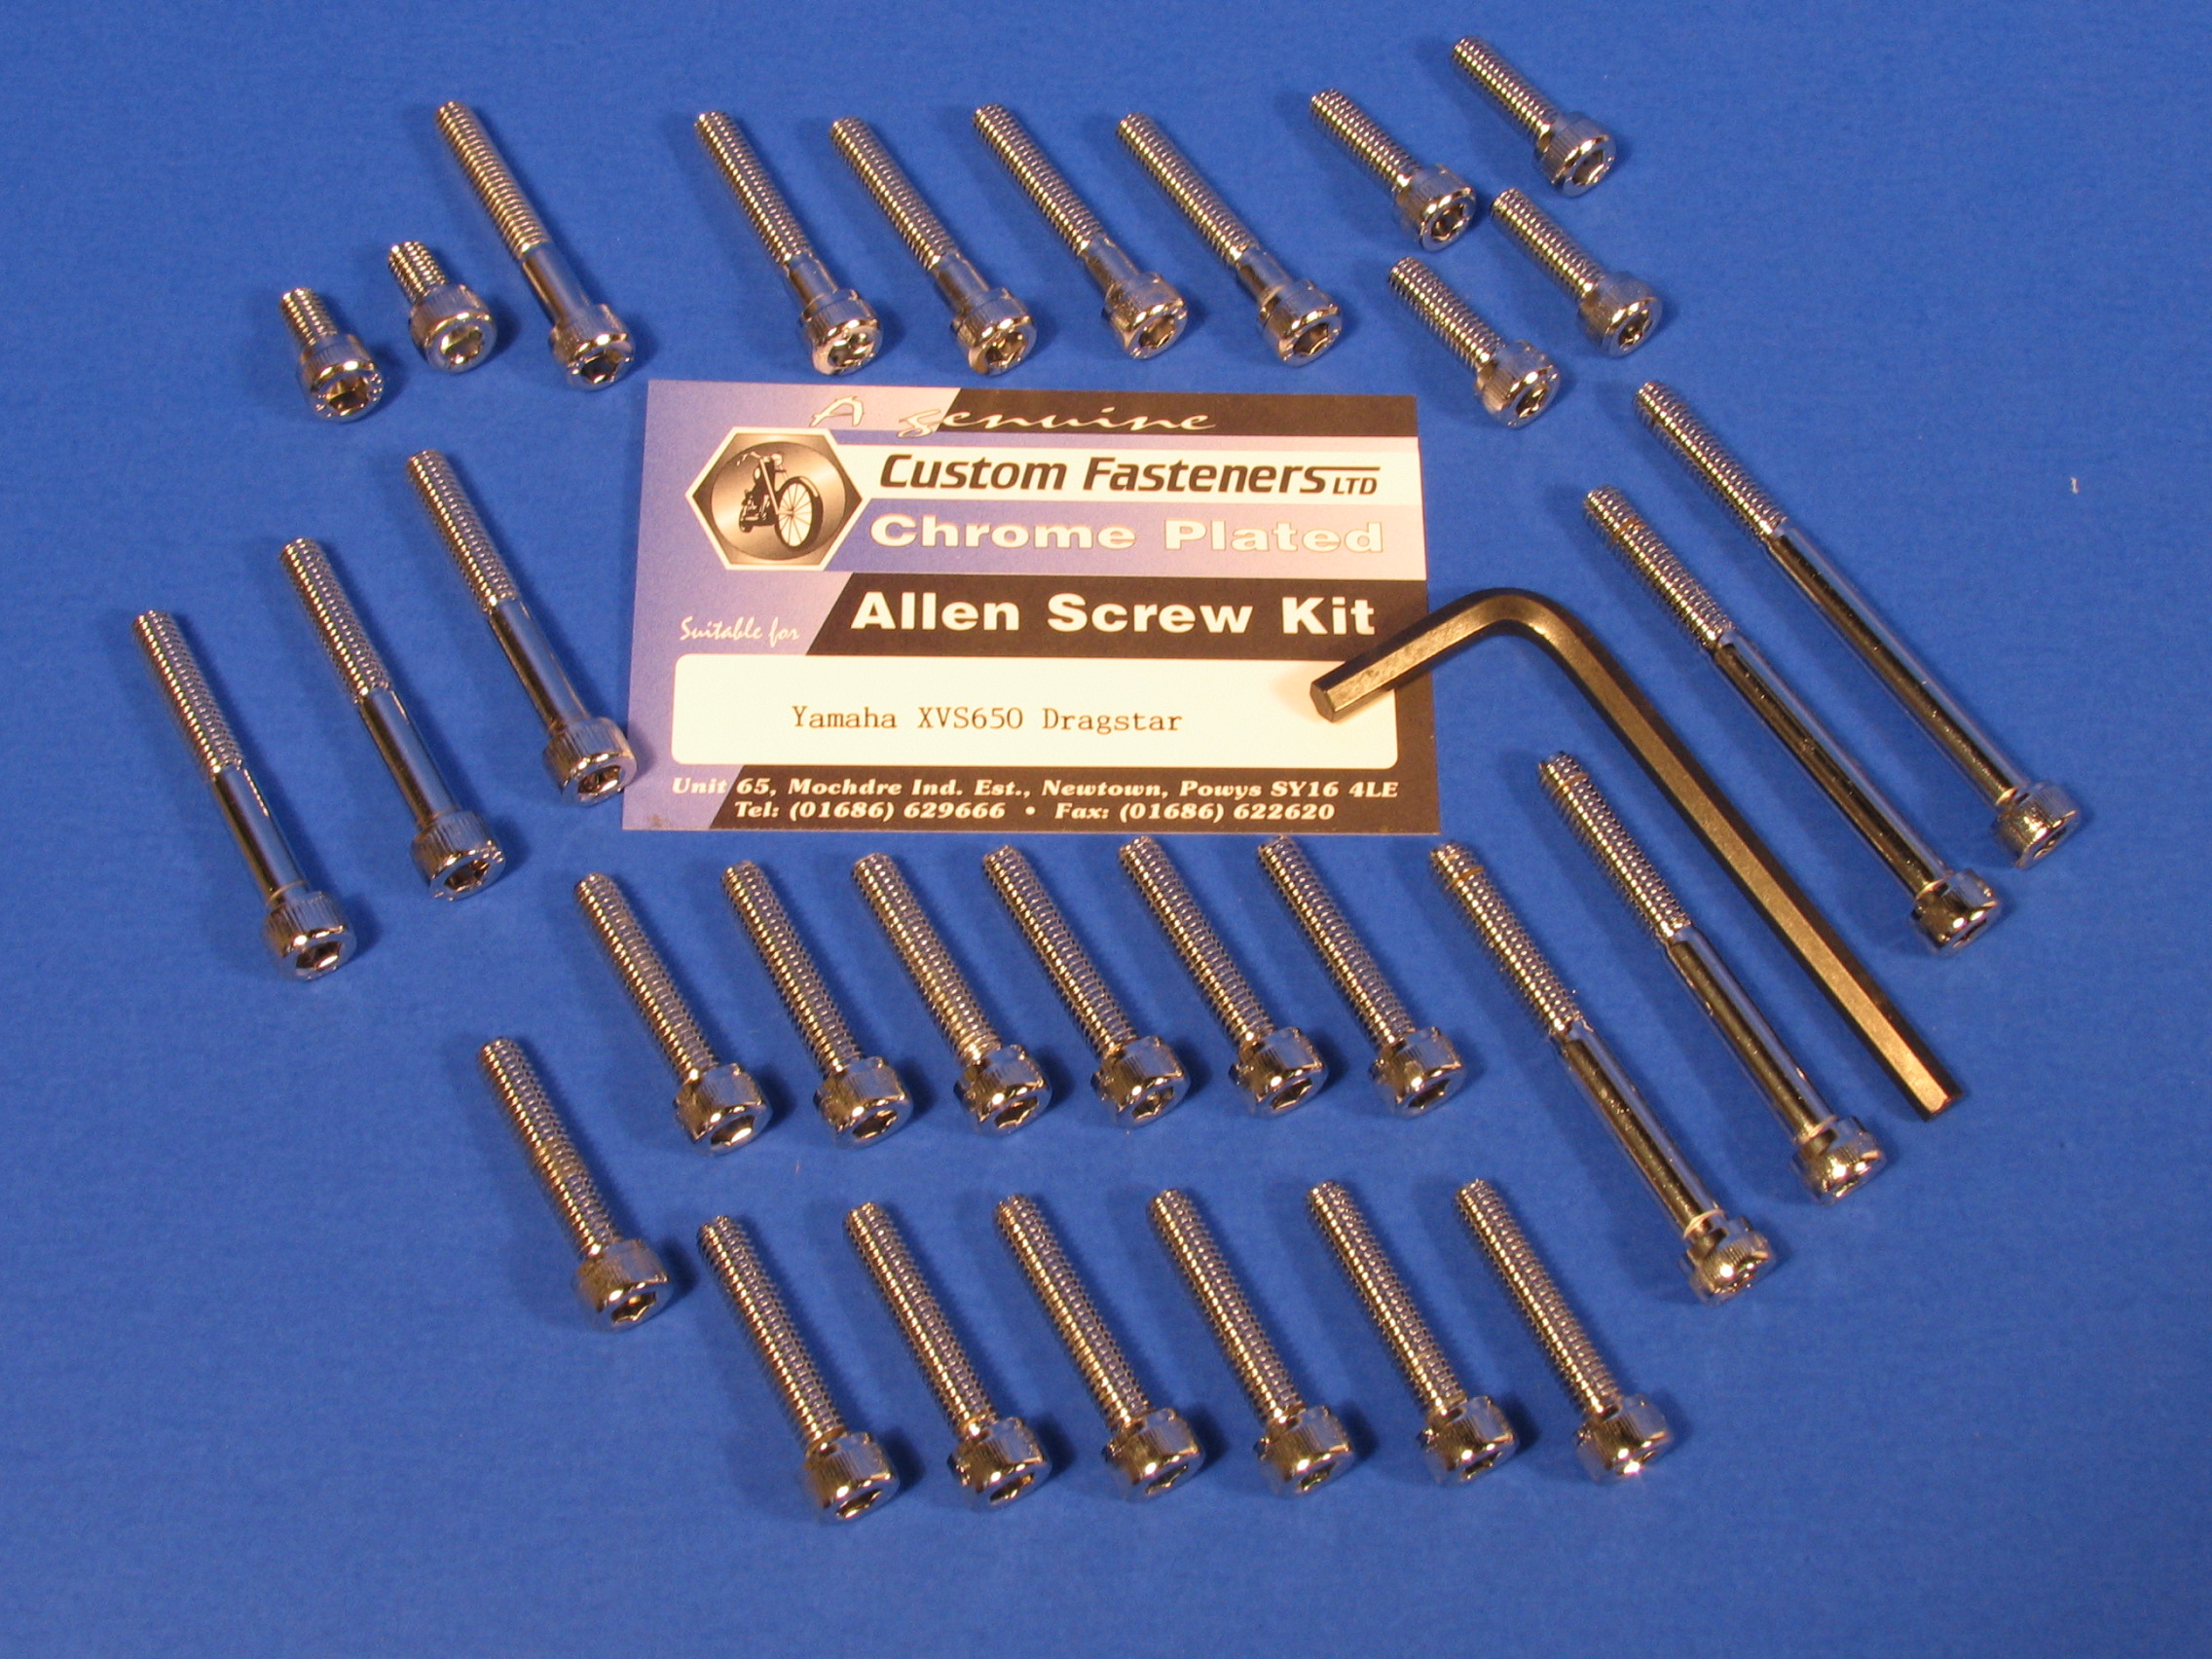 Lambretta Allen Screw Kits